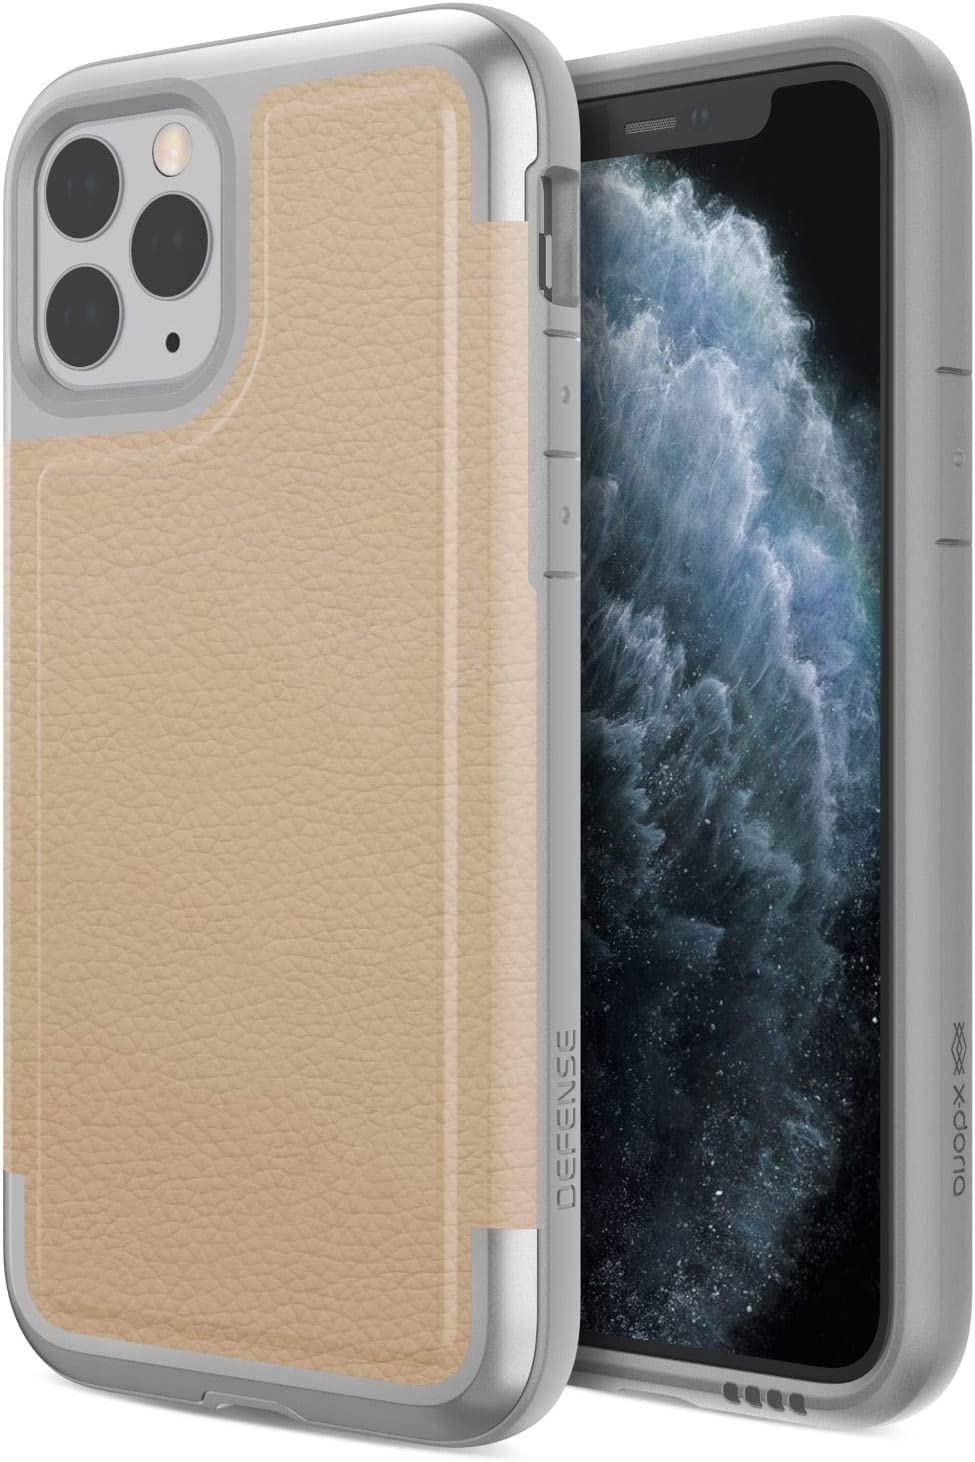 Raptic Prime, Compatible with Apple iPhone 11 Pro Case (Formerly X-Doria Prime) - Military Grade Drop Tested, Aluminum Frame, Luxurious Back Panel, ...